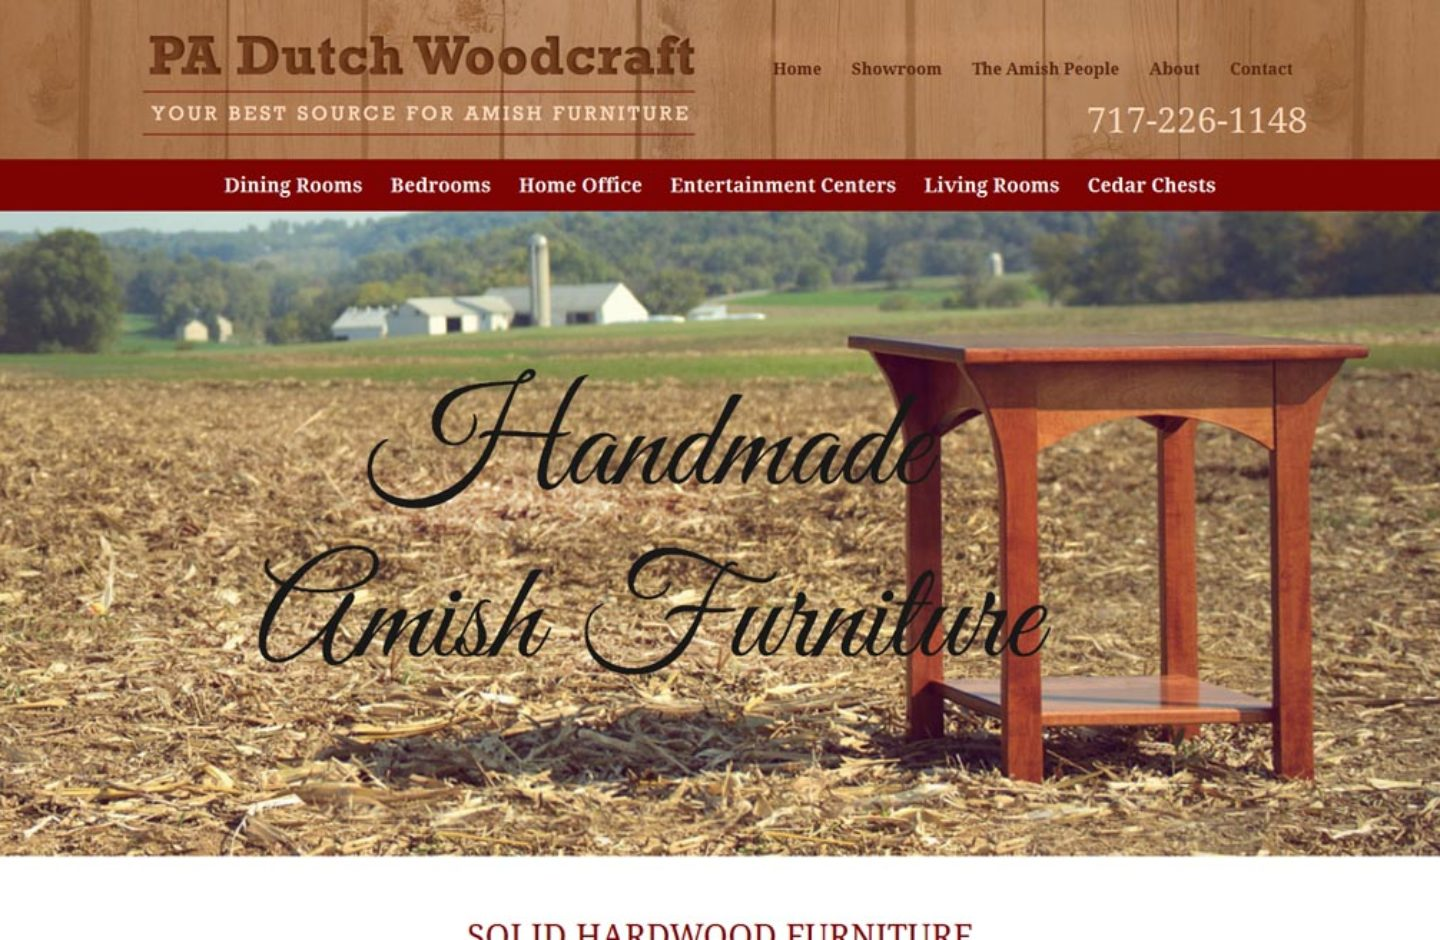 PA Dutch Woodcraft